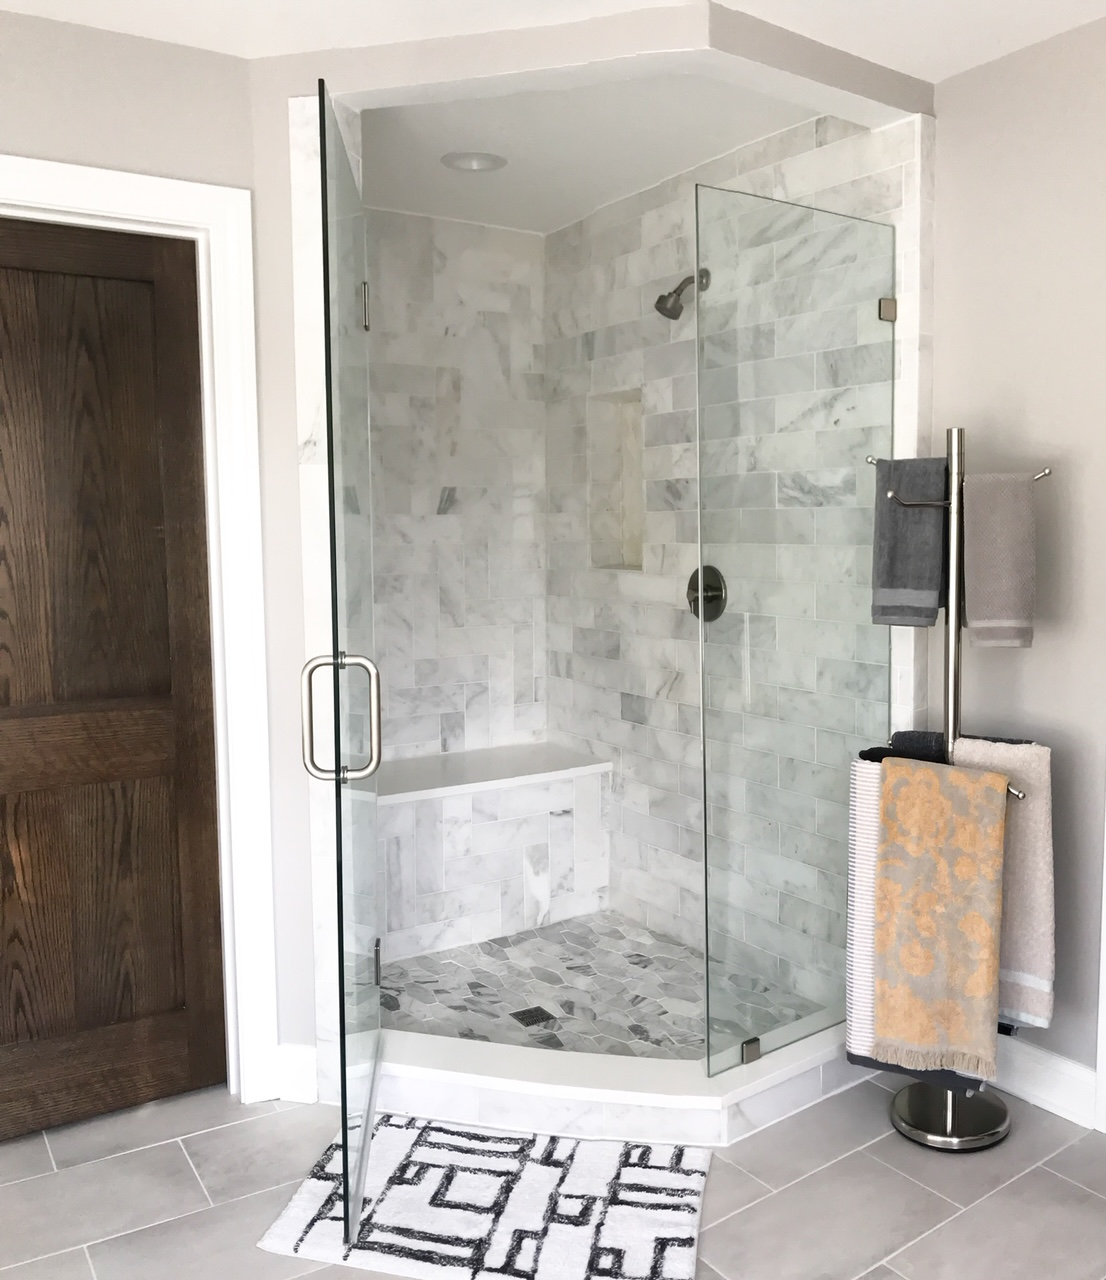 Master Bathroom Decor Ideas. Best bathroom towels. Best toilet paper holders. Designer luxury towel bars. Best decorative towel bars. Softest bath towels. Colorful bathroom rugs Best bathroom rugs to add a pop of color. Bathroom design and decor ideas. How to decorate a bathroom. Bathroom inspo. #bathroom #decor #ideas